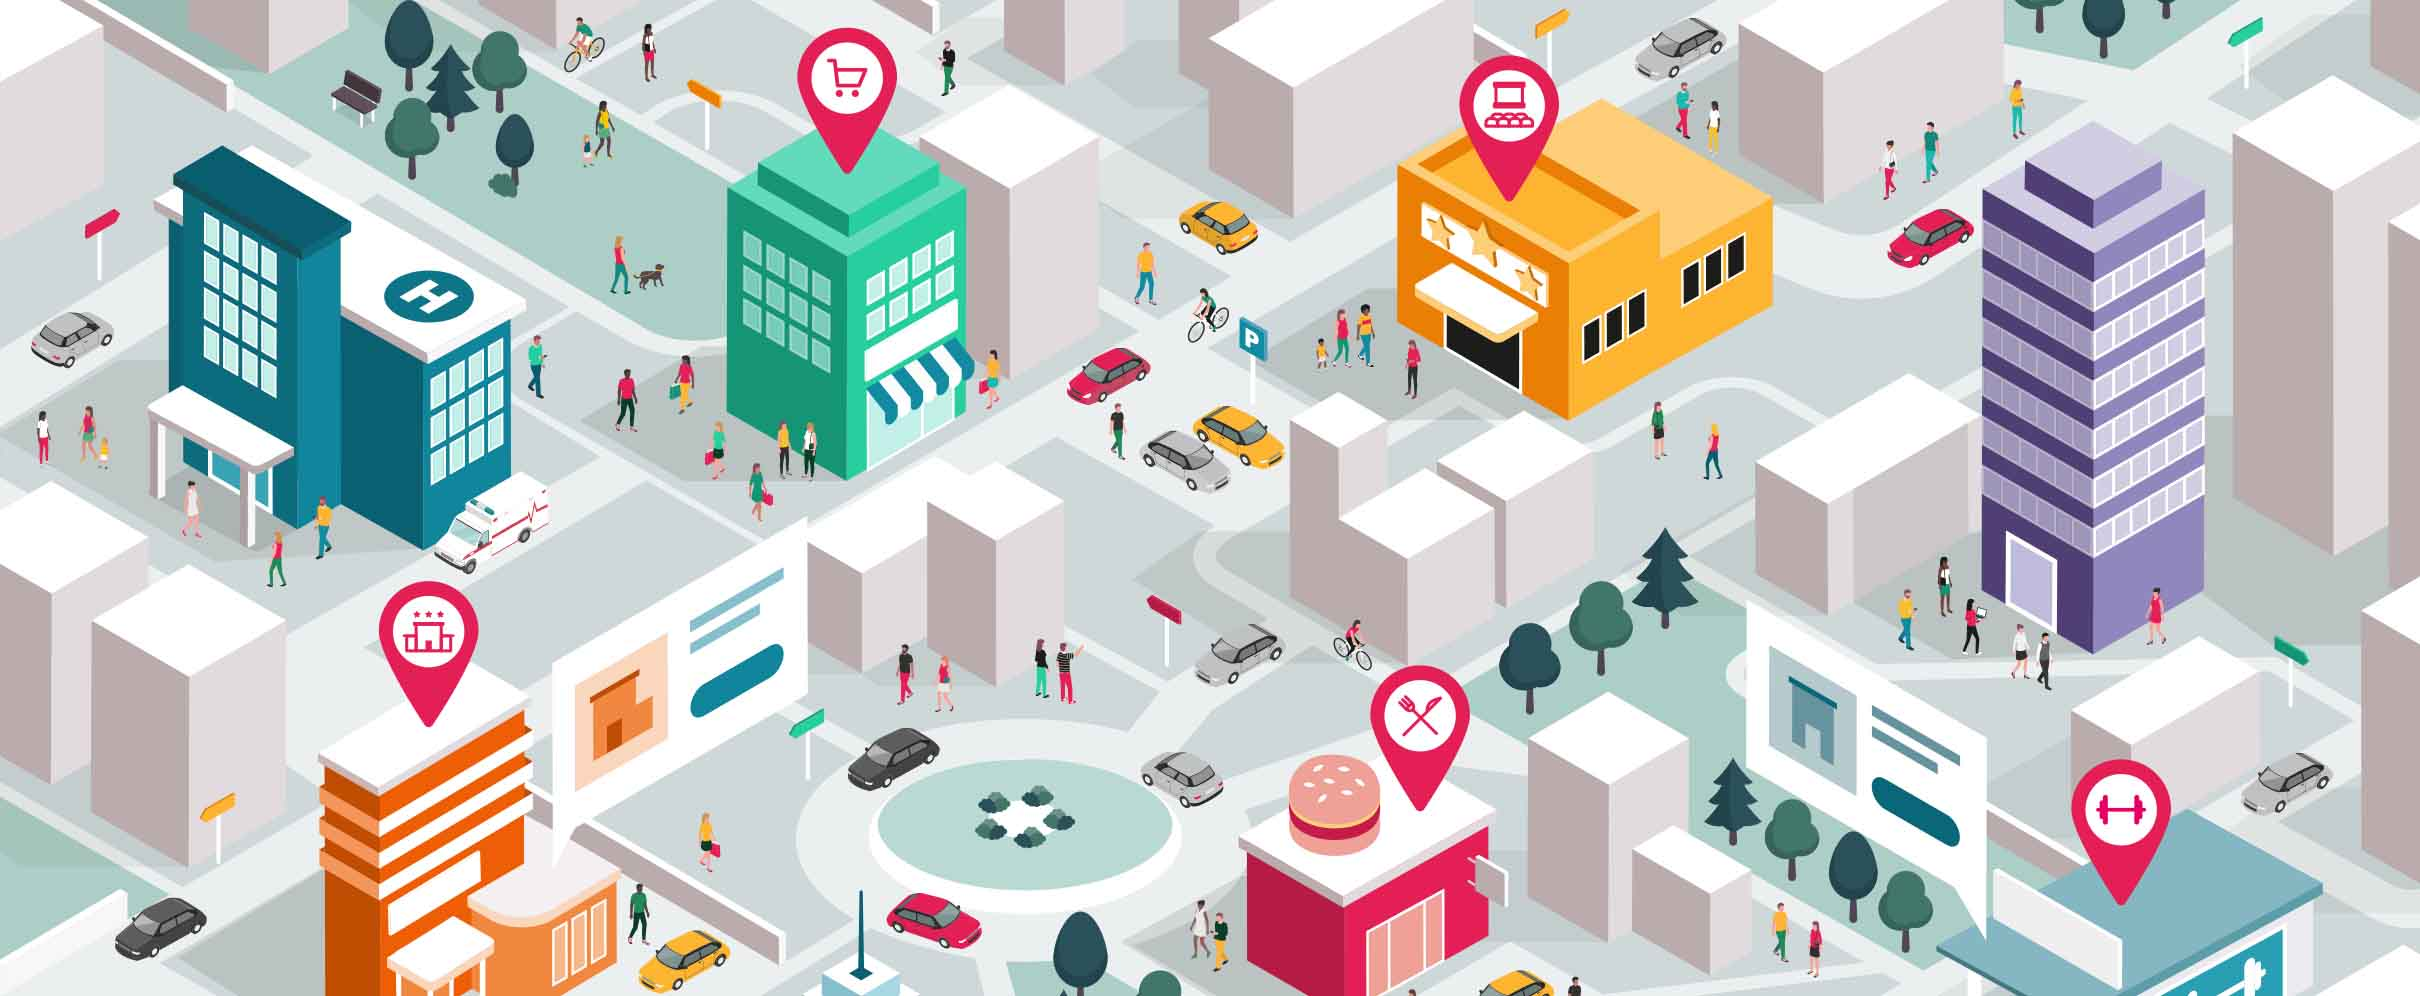 Colorful vector showing a city with different shops.